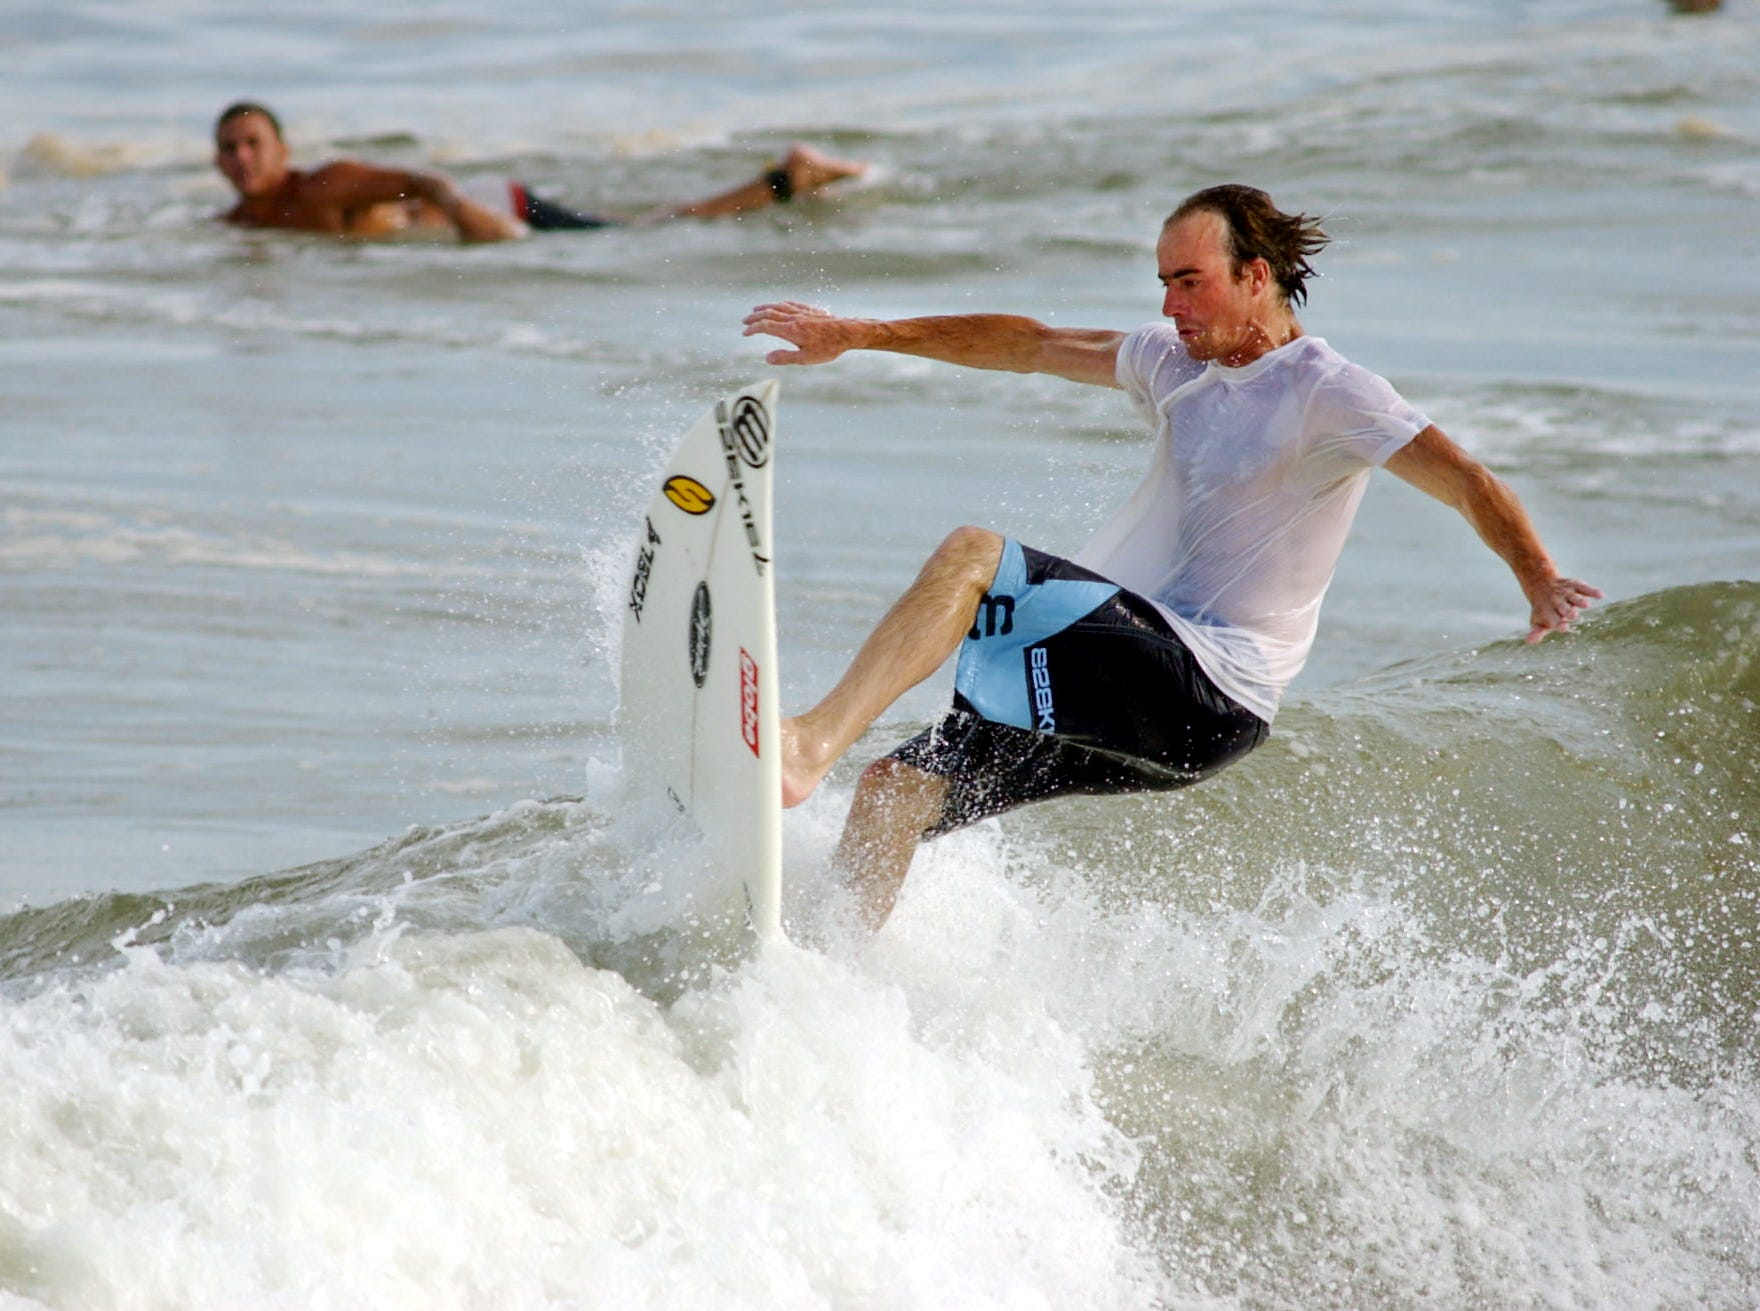 LOCAL -- Greg Pobst from California, surfs in the huge waves off Bob Hall Pier on Padre Island in Corpus Christi in September 2002. Tropical Storm Isidore churned up the waves, to the surfers' delight.